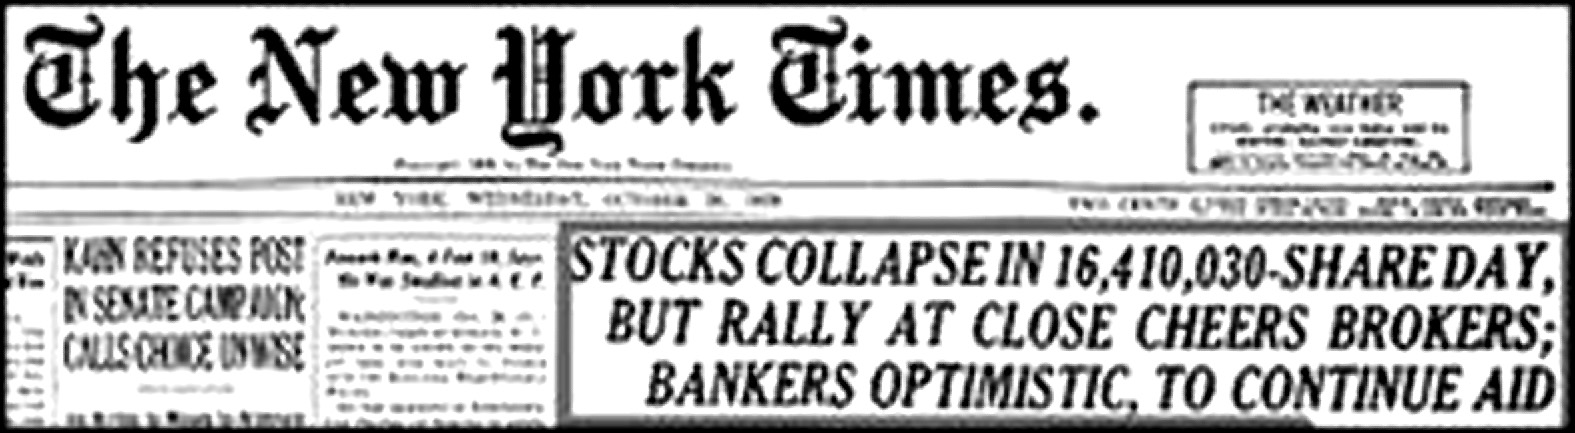 1929-new-york-times